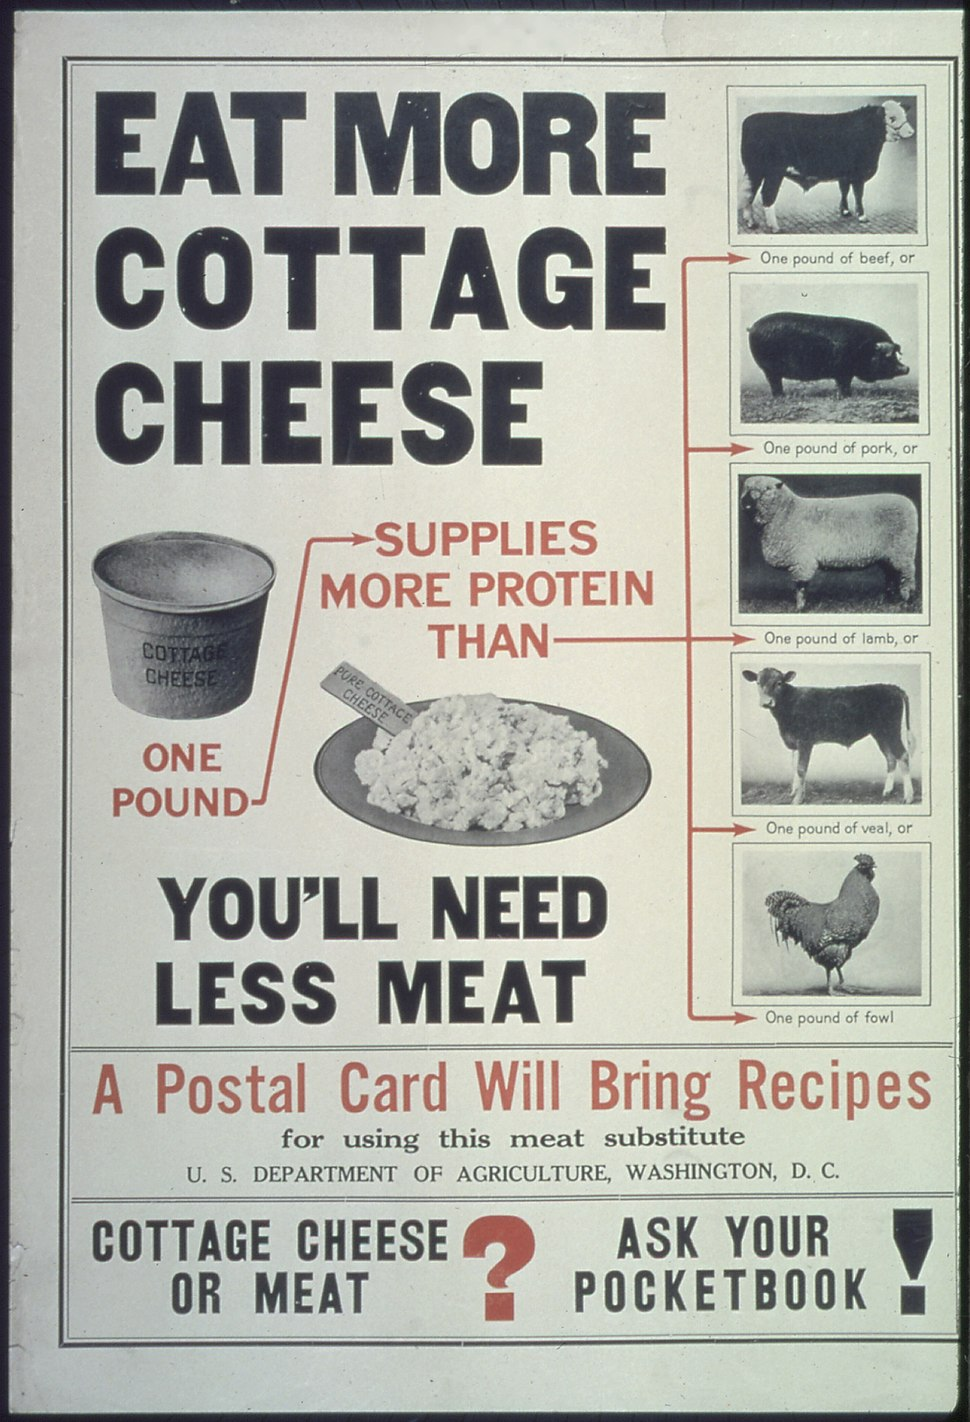 """Eat More Cottage Cheese...You'll Need Less Meat...A Postal Card Will Bring Recipes...Cottage Cheese or Meat^ Ask... - NARA - 512542"